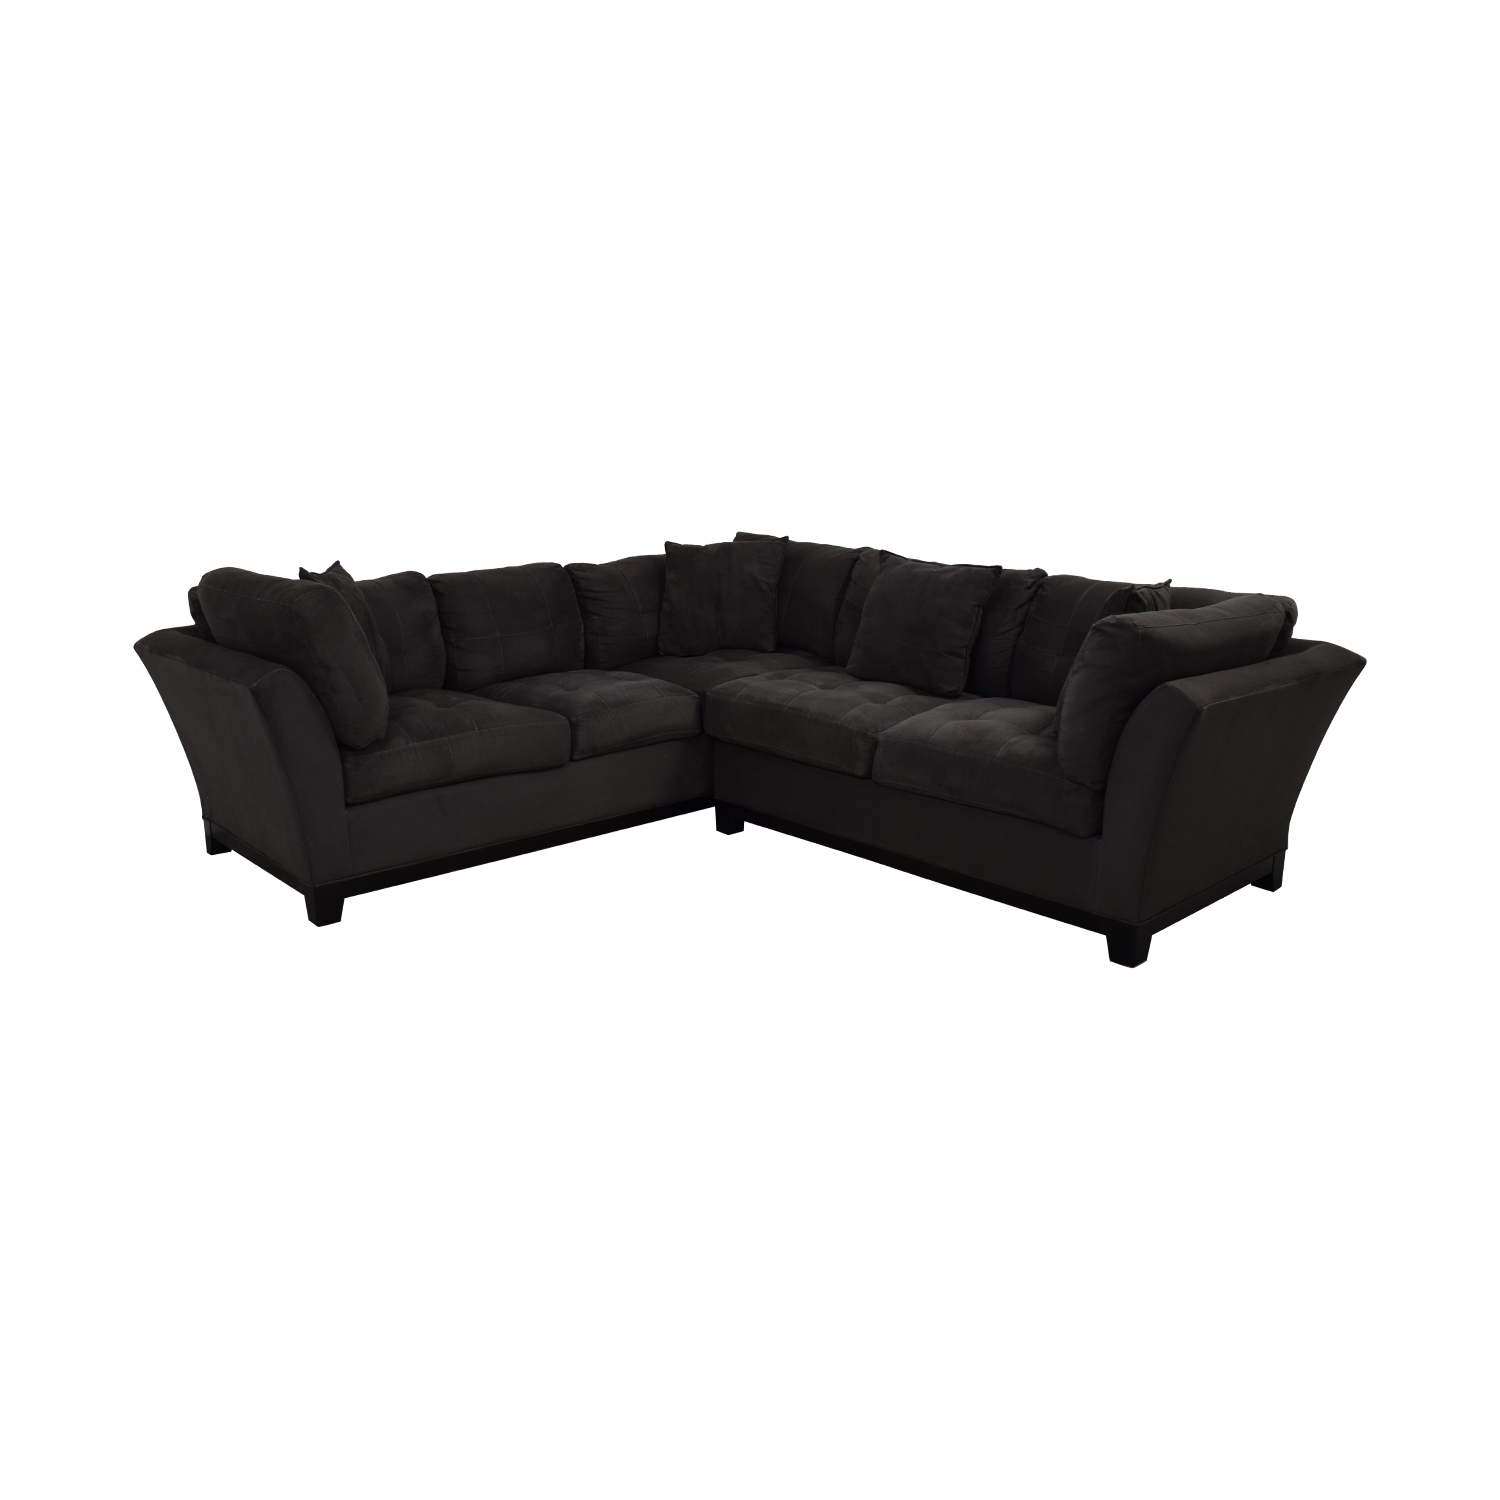 buy Cindy Crawford Home Cindy Crawford Home Two-Piece Sectional online